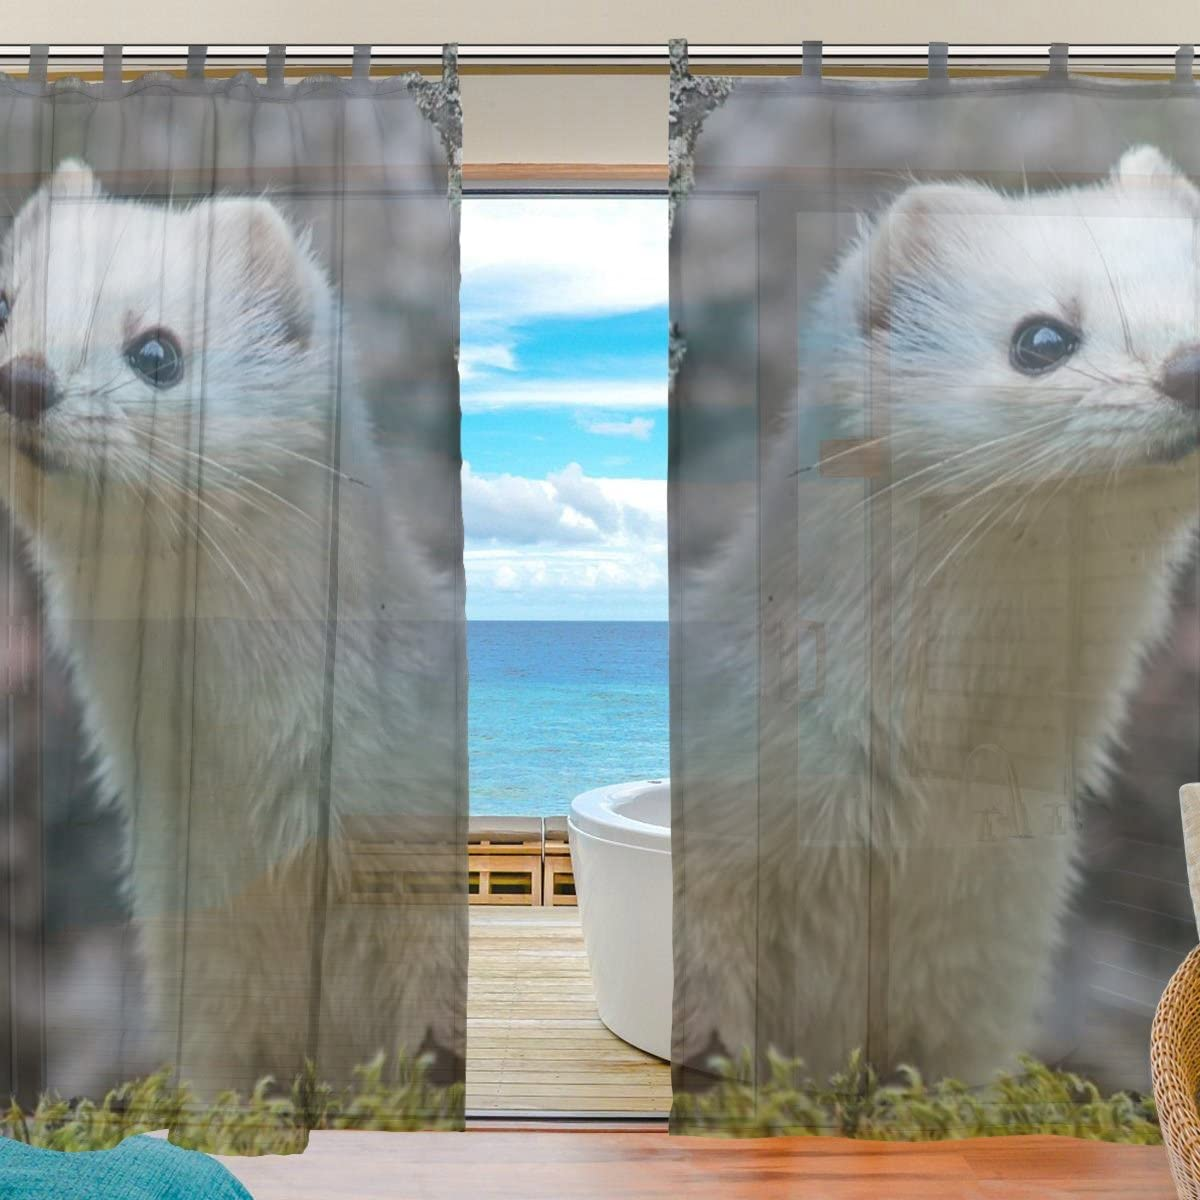 INGBAGS Bedroom Decor Living Room Decorations Ferret Pattern Print Tulle Polyester Door Window Gauze Sheer Curtain Drape Two Panels Set 55×78 inch,Set of 2